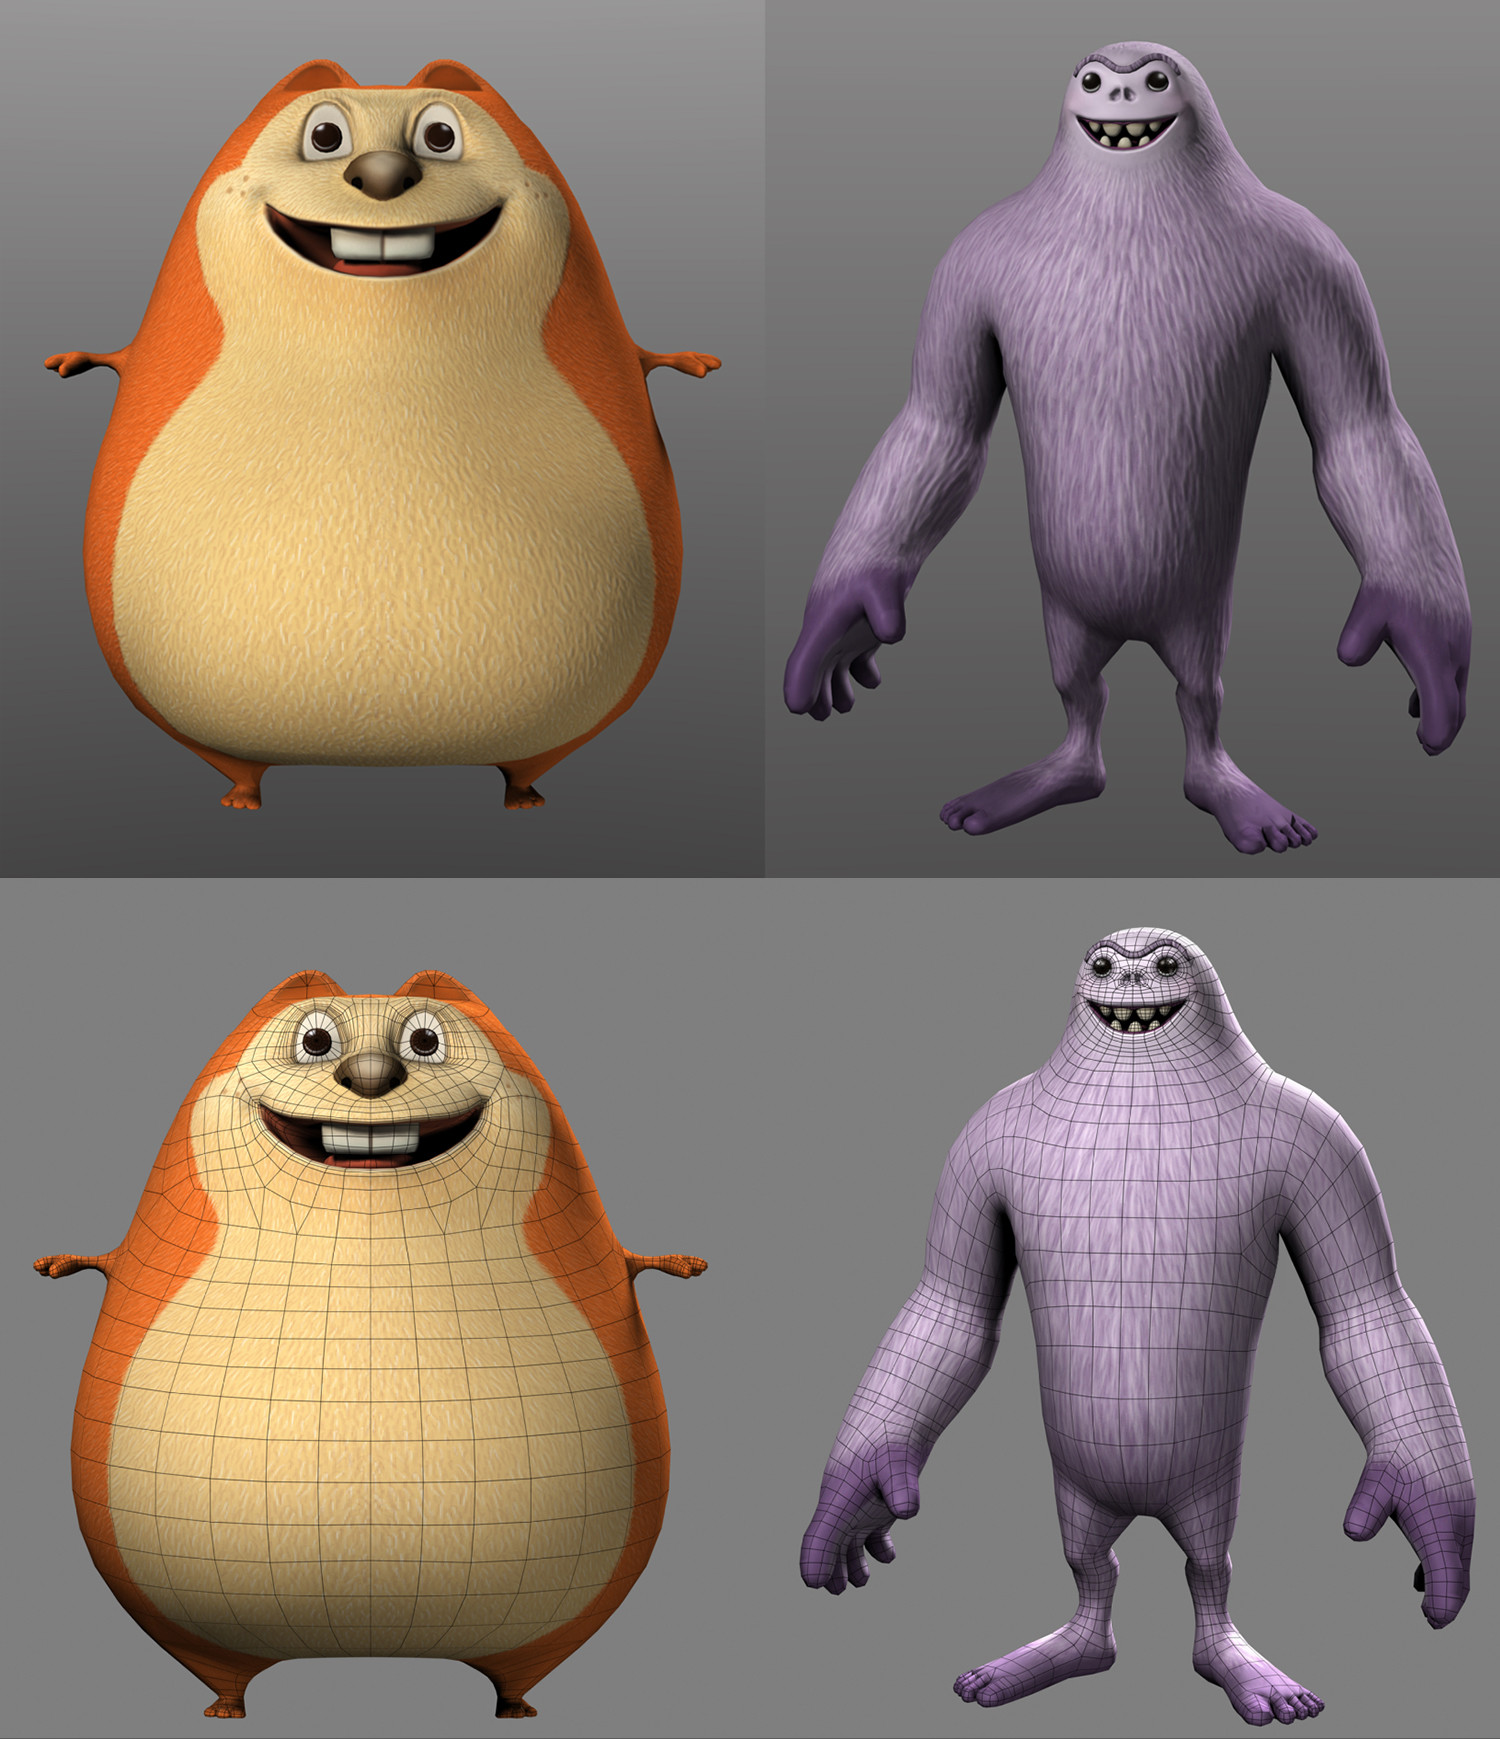 Textured Gopher and Yeti for Kinect Adventures - Microsoft Game Studios.